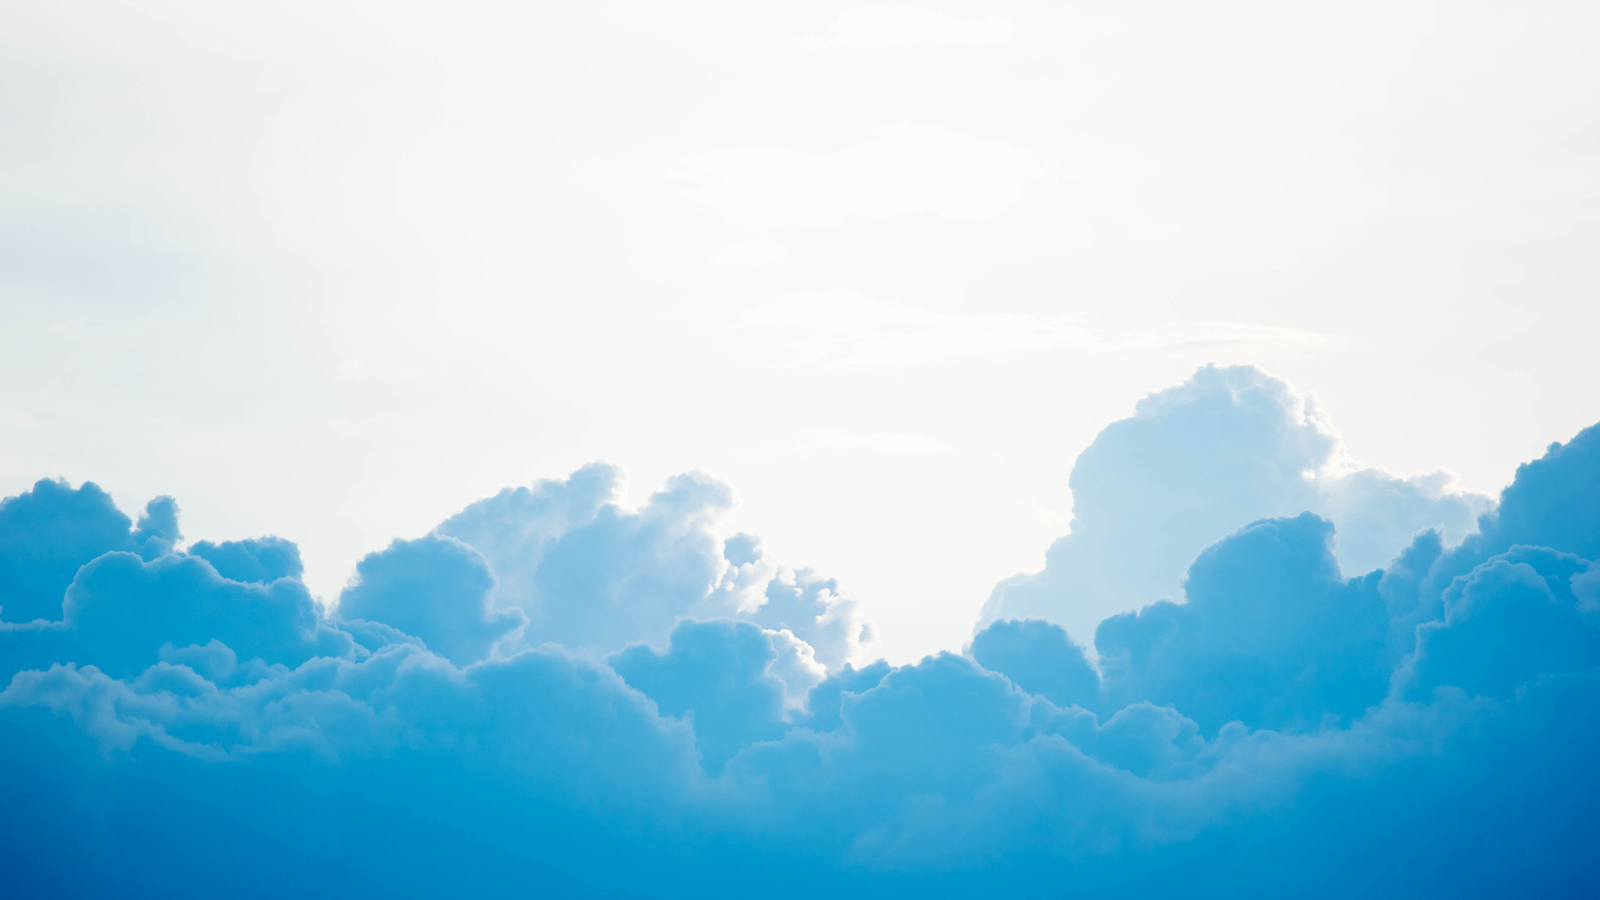 Cloud Budgets Busted: Almost 40% Overspent Last Year